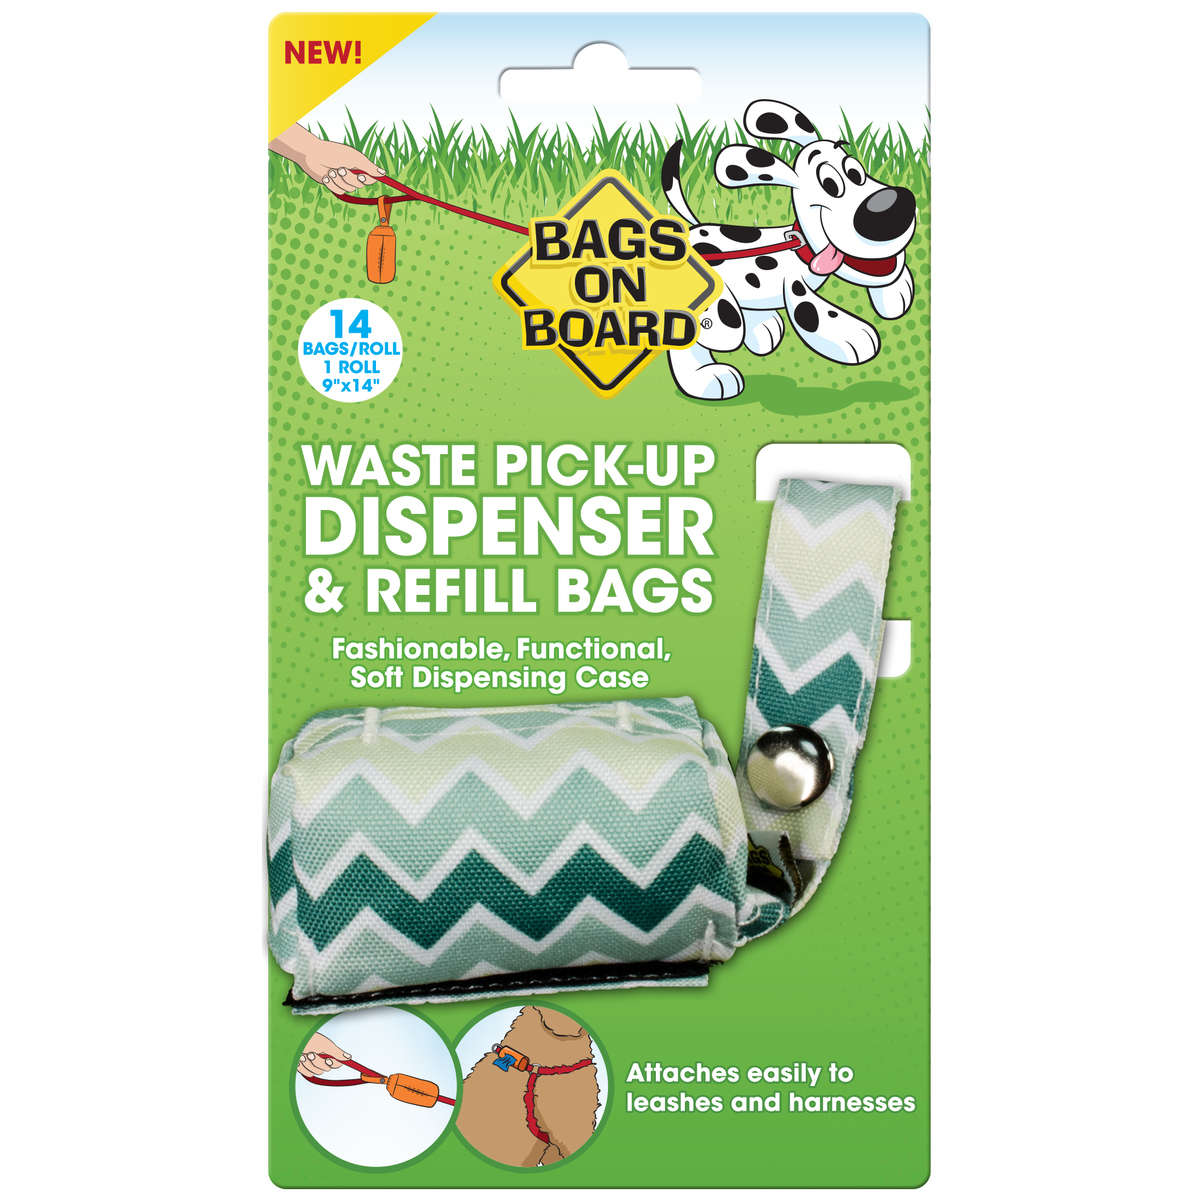 Bags on Board Fashion Dispenser and Poop Bag Refills Chevron Print 14 bags Green